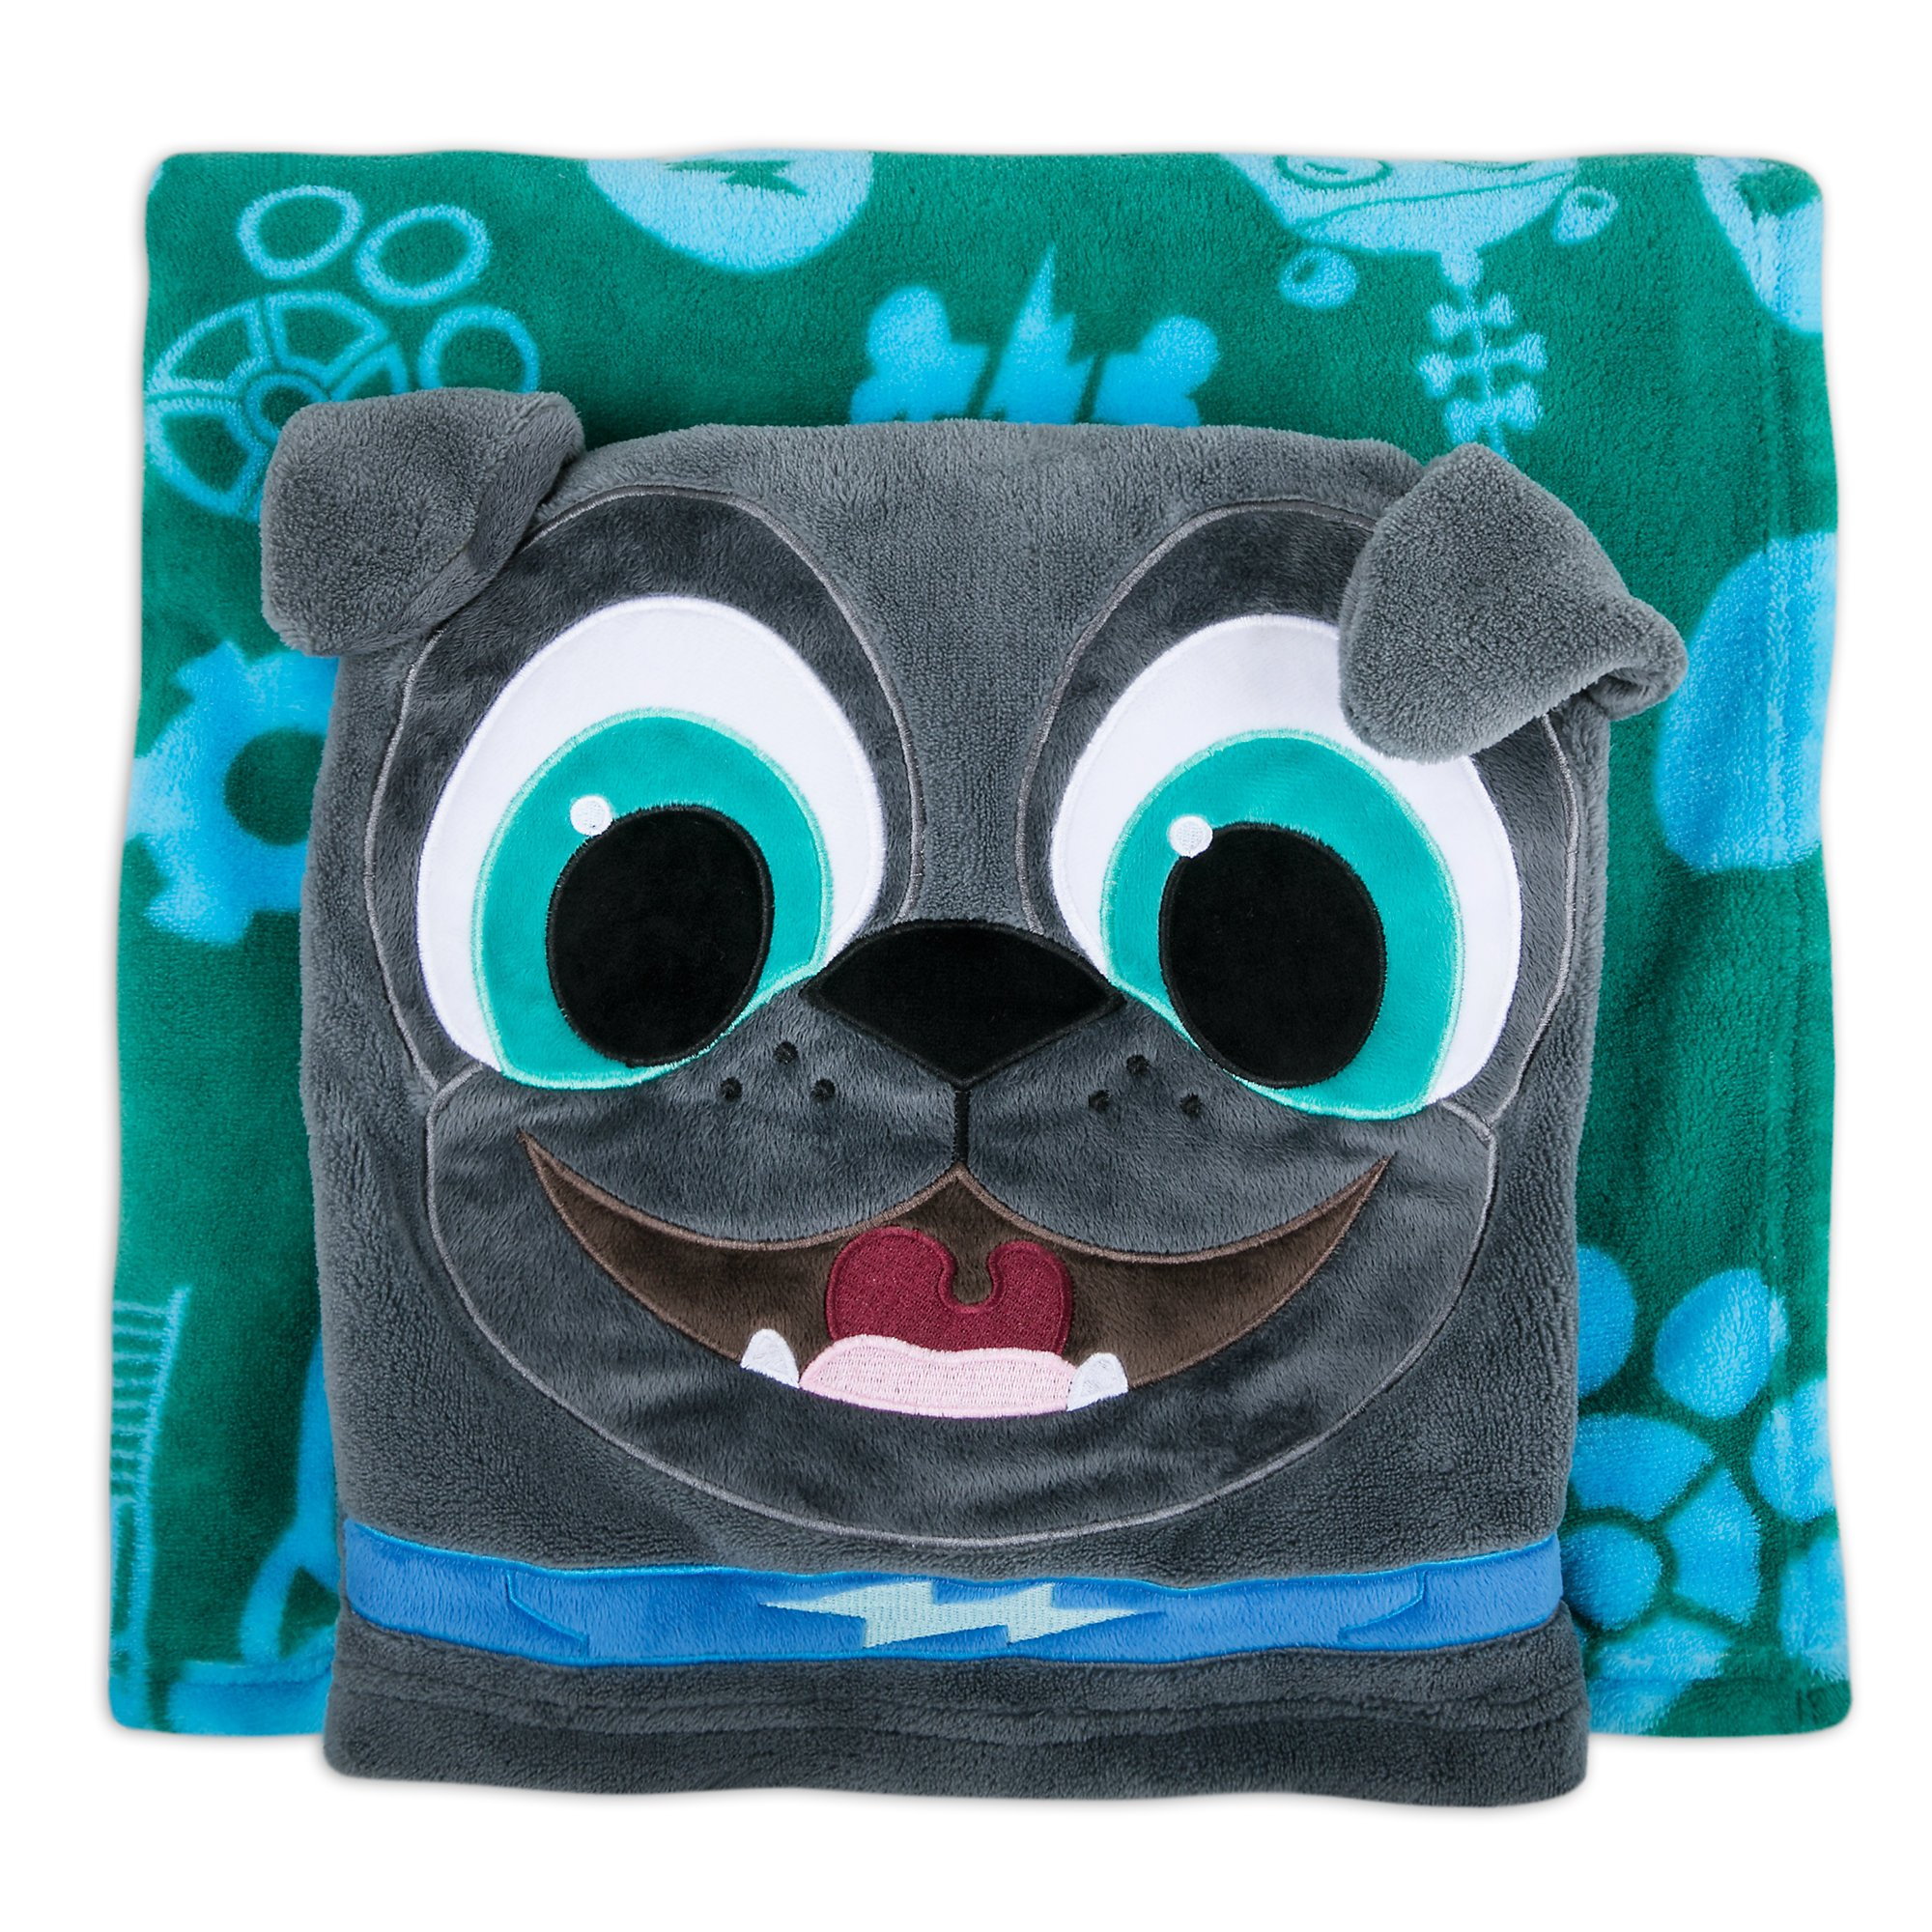 Disney Bingo Fleece Throw - Puppy Dog Pals by Disney